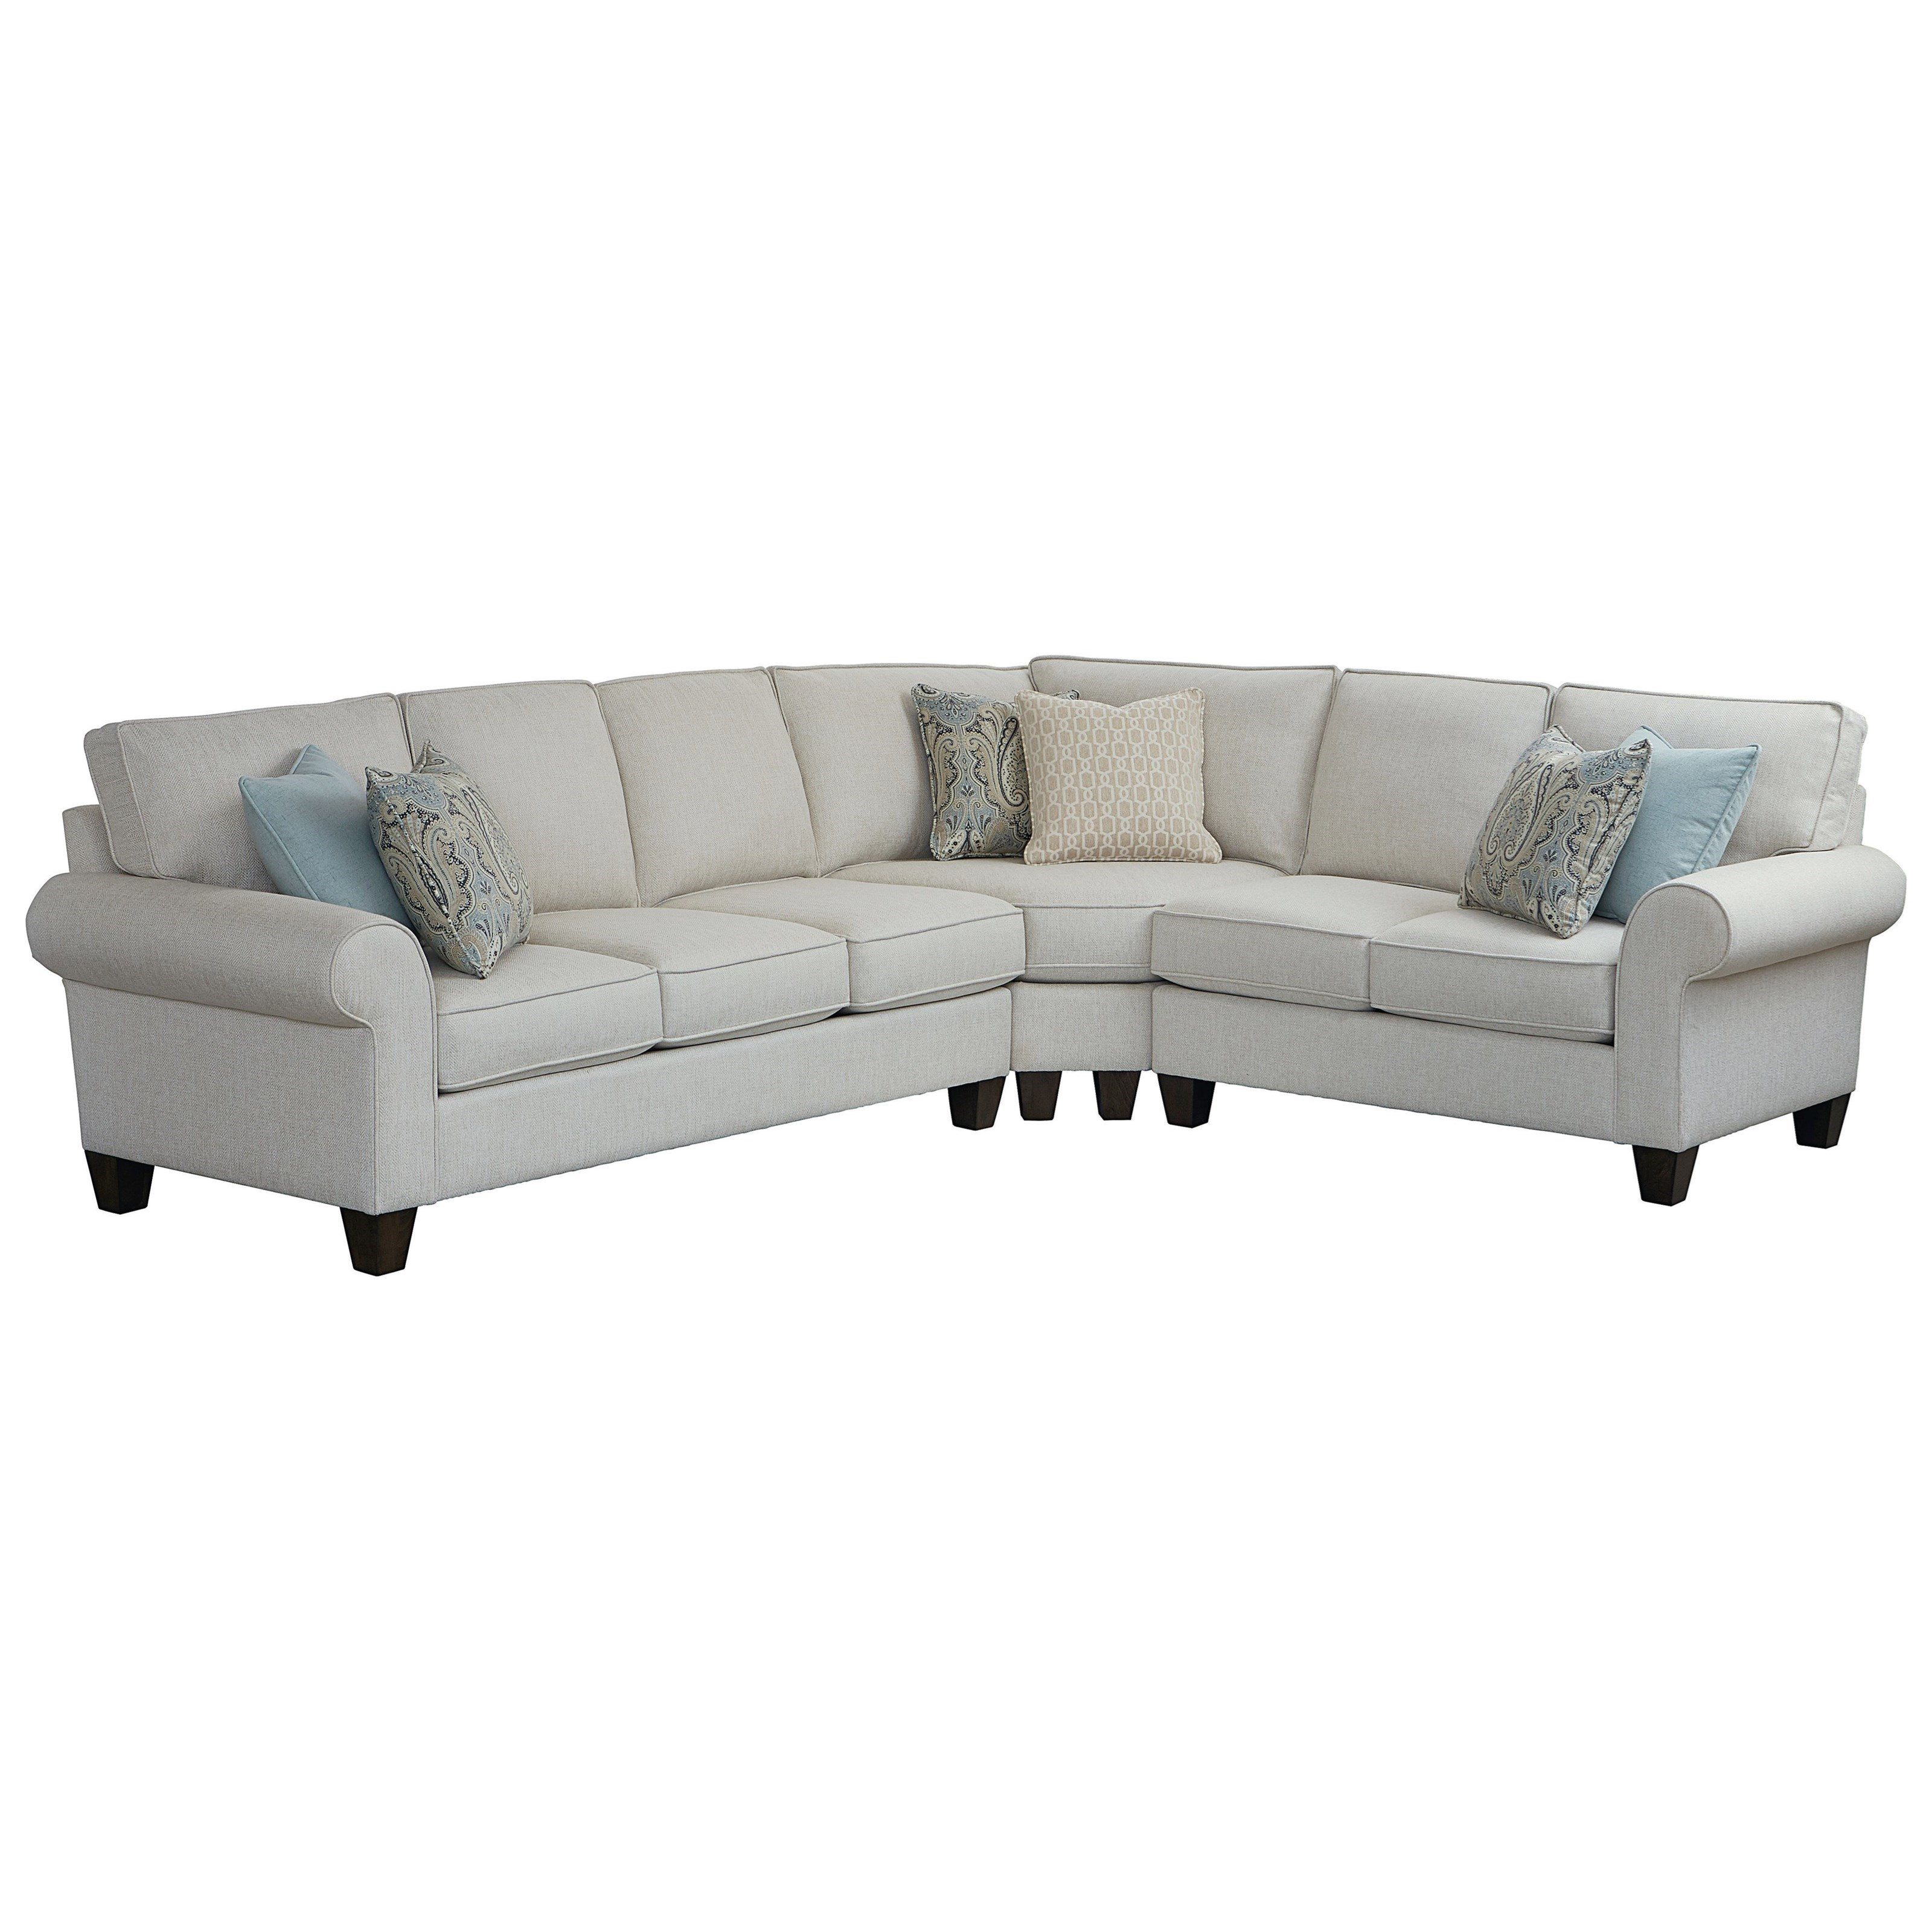 Sanderson 5-Seat Sectional Sofa w/ LAF Sofa by Bassett at Bassett of Cool Springs